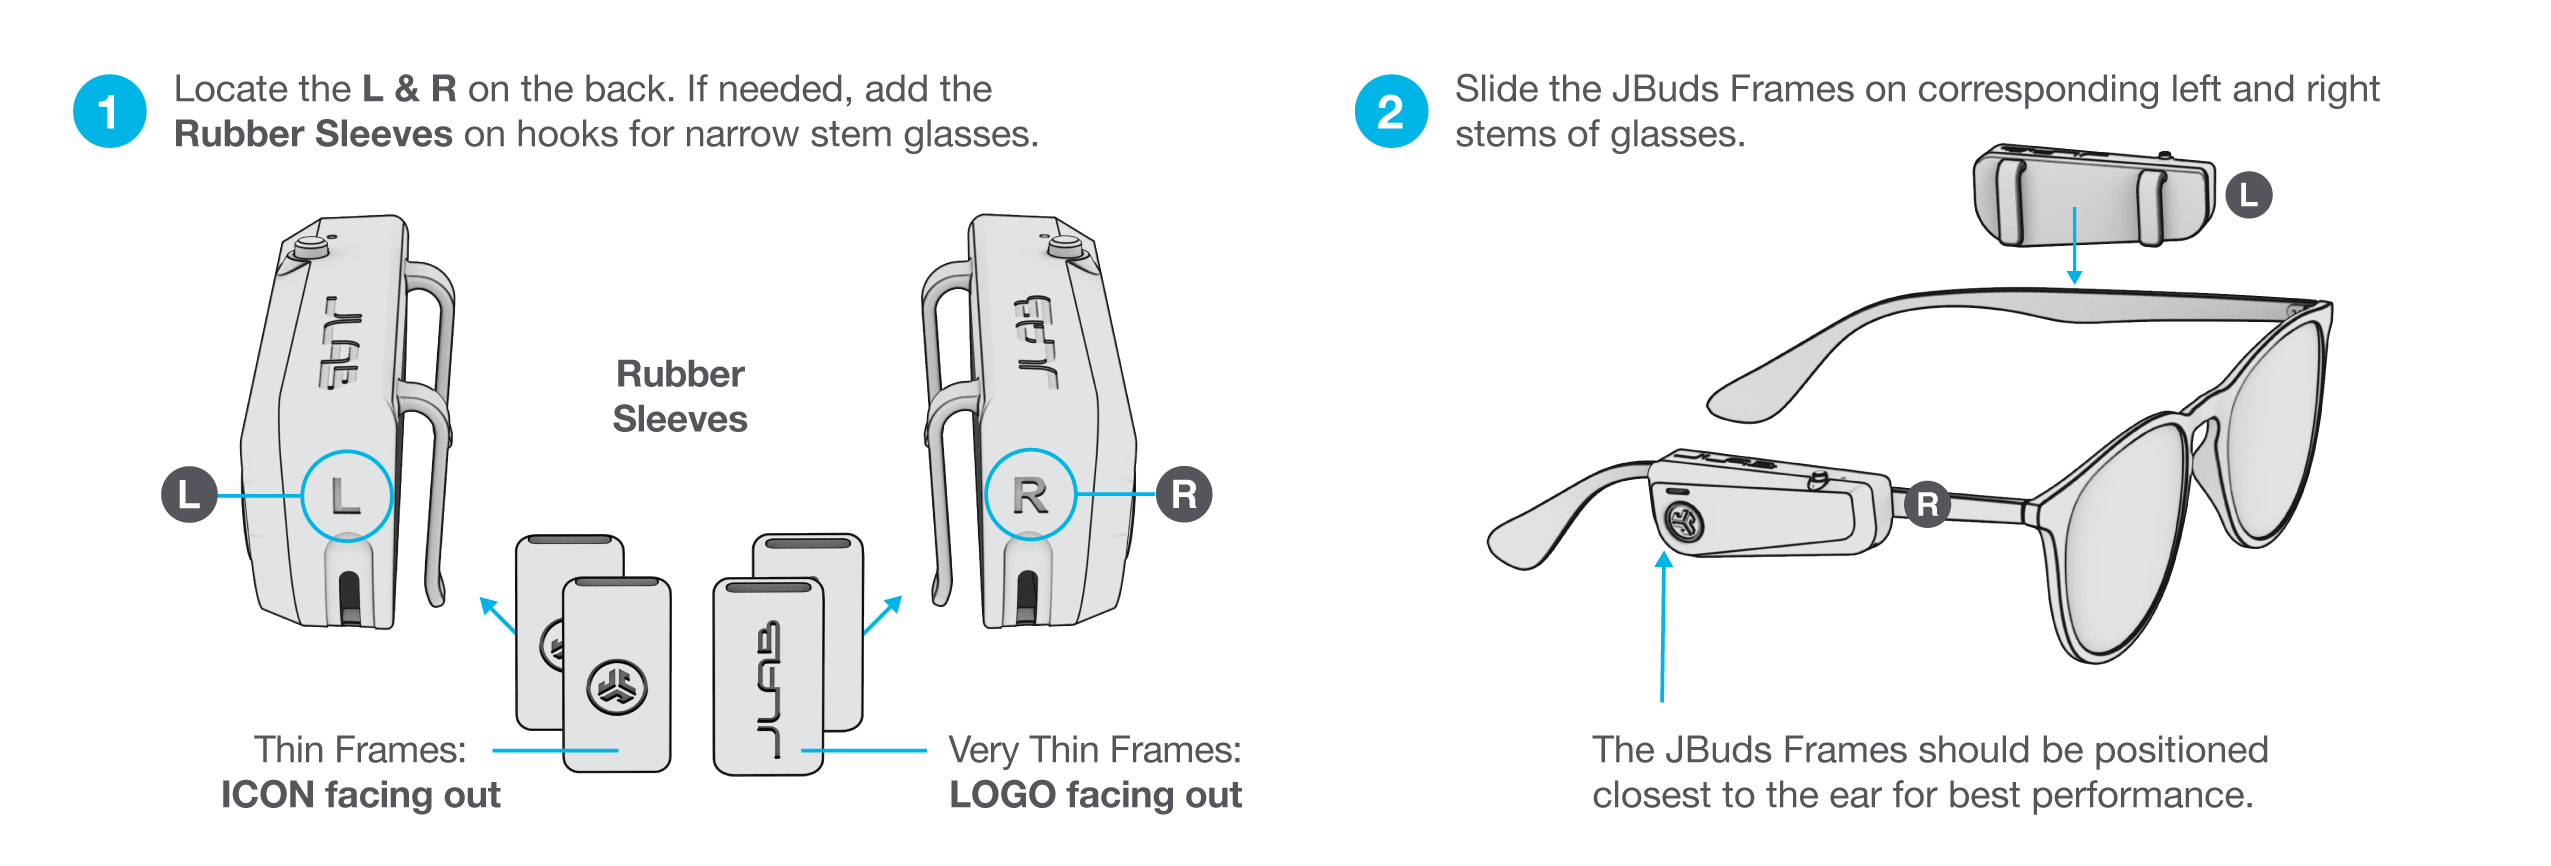 How to assemble your JBuds Frames